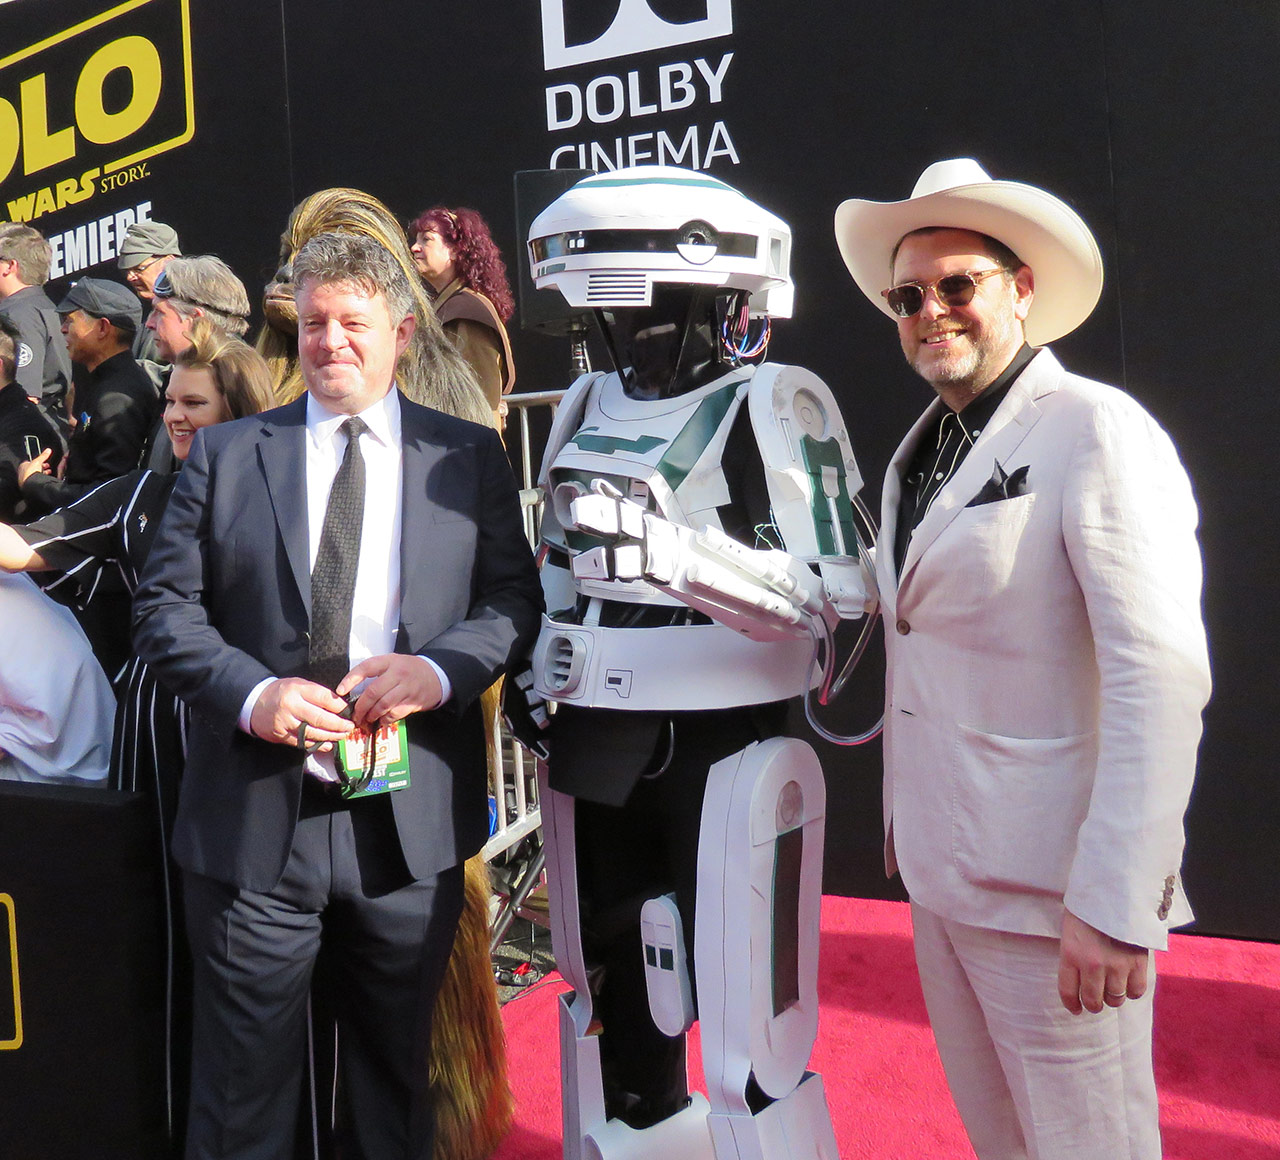 Costume designers David Crossman, left, and Glyn Dillon, right, stop to pose with cosplayer Darren Moser, dressed as L3-37, during the world premiere of <em>Solo: A Star Wars Story</em>.